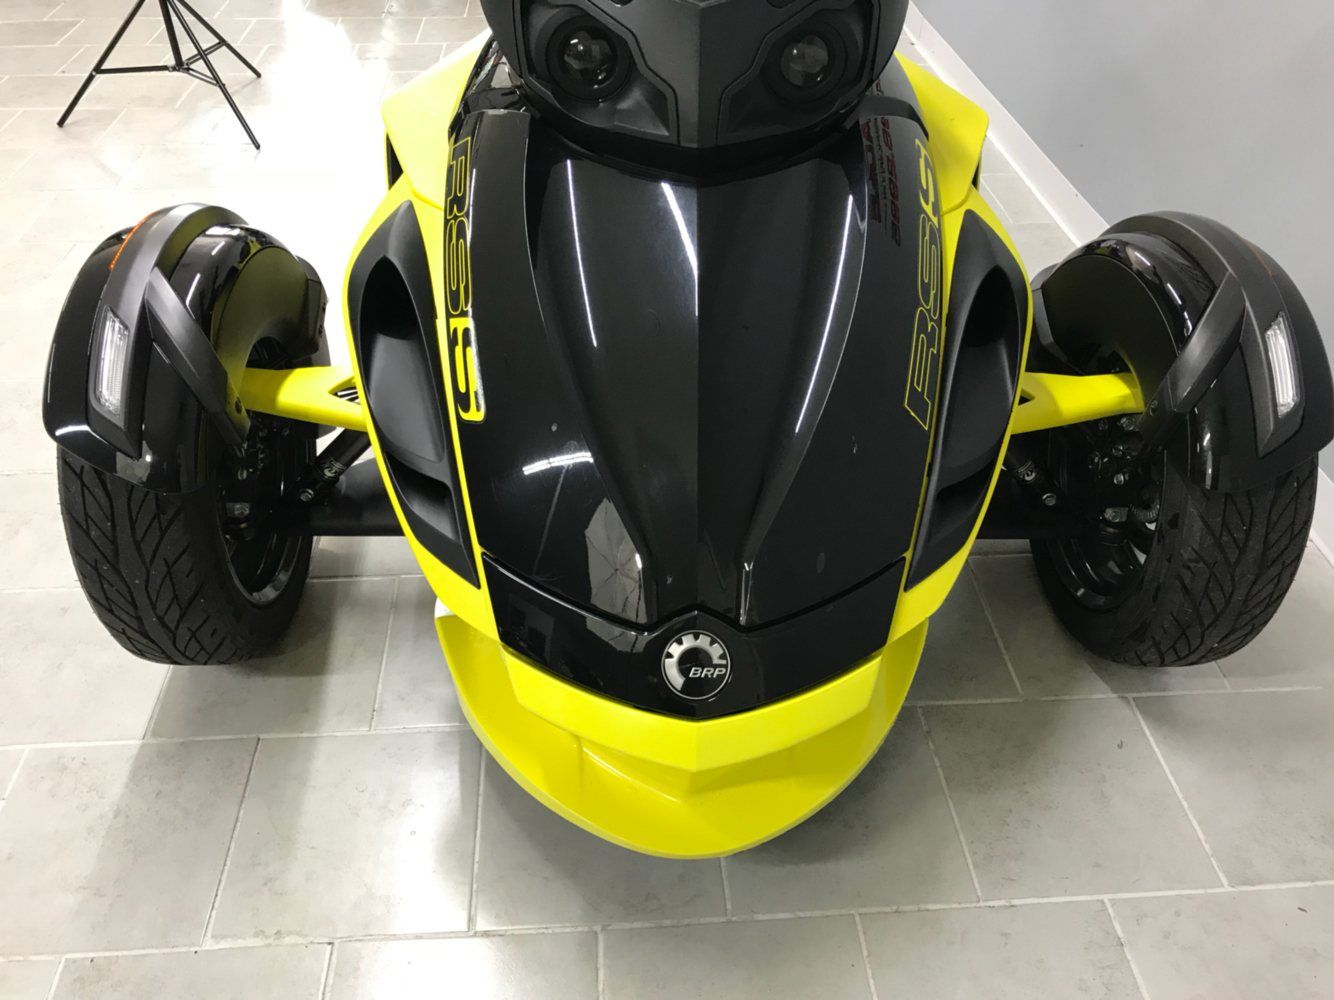 2014 Can-Am™ Spyder RS-S SM5 6